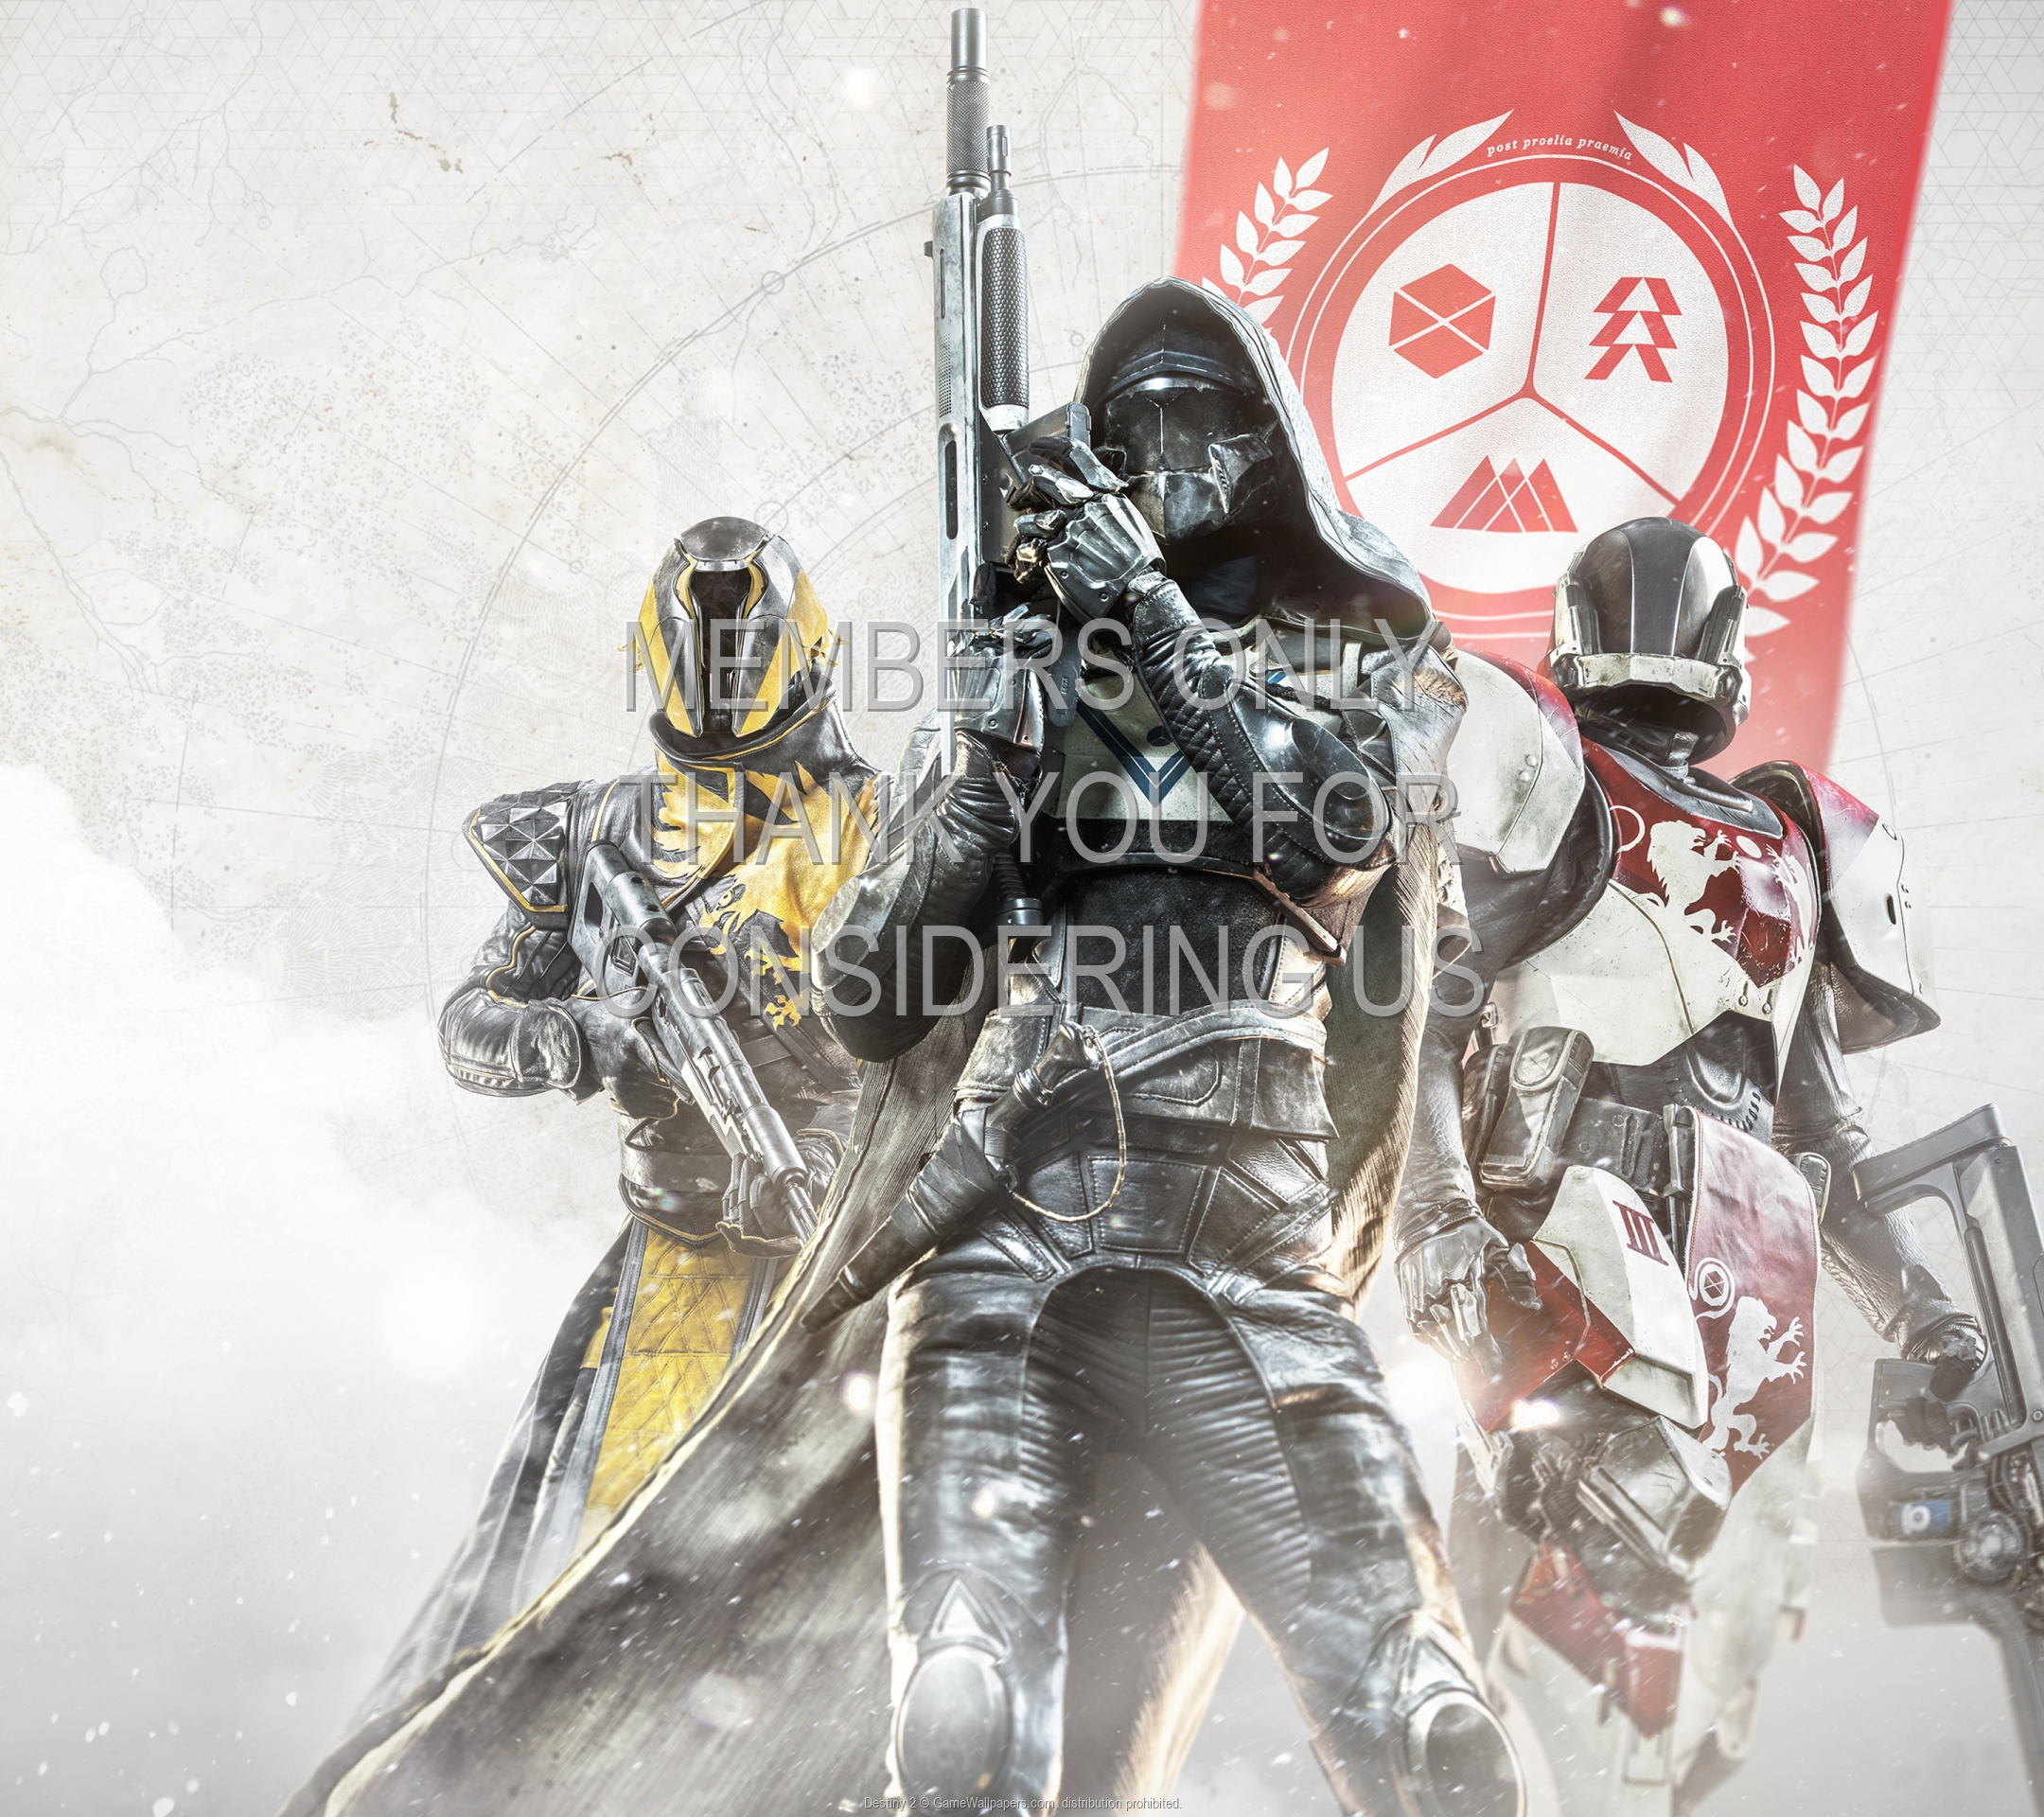 Destiny 2 1920x1080 Mobile wallpaper or background 04